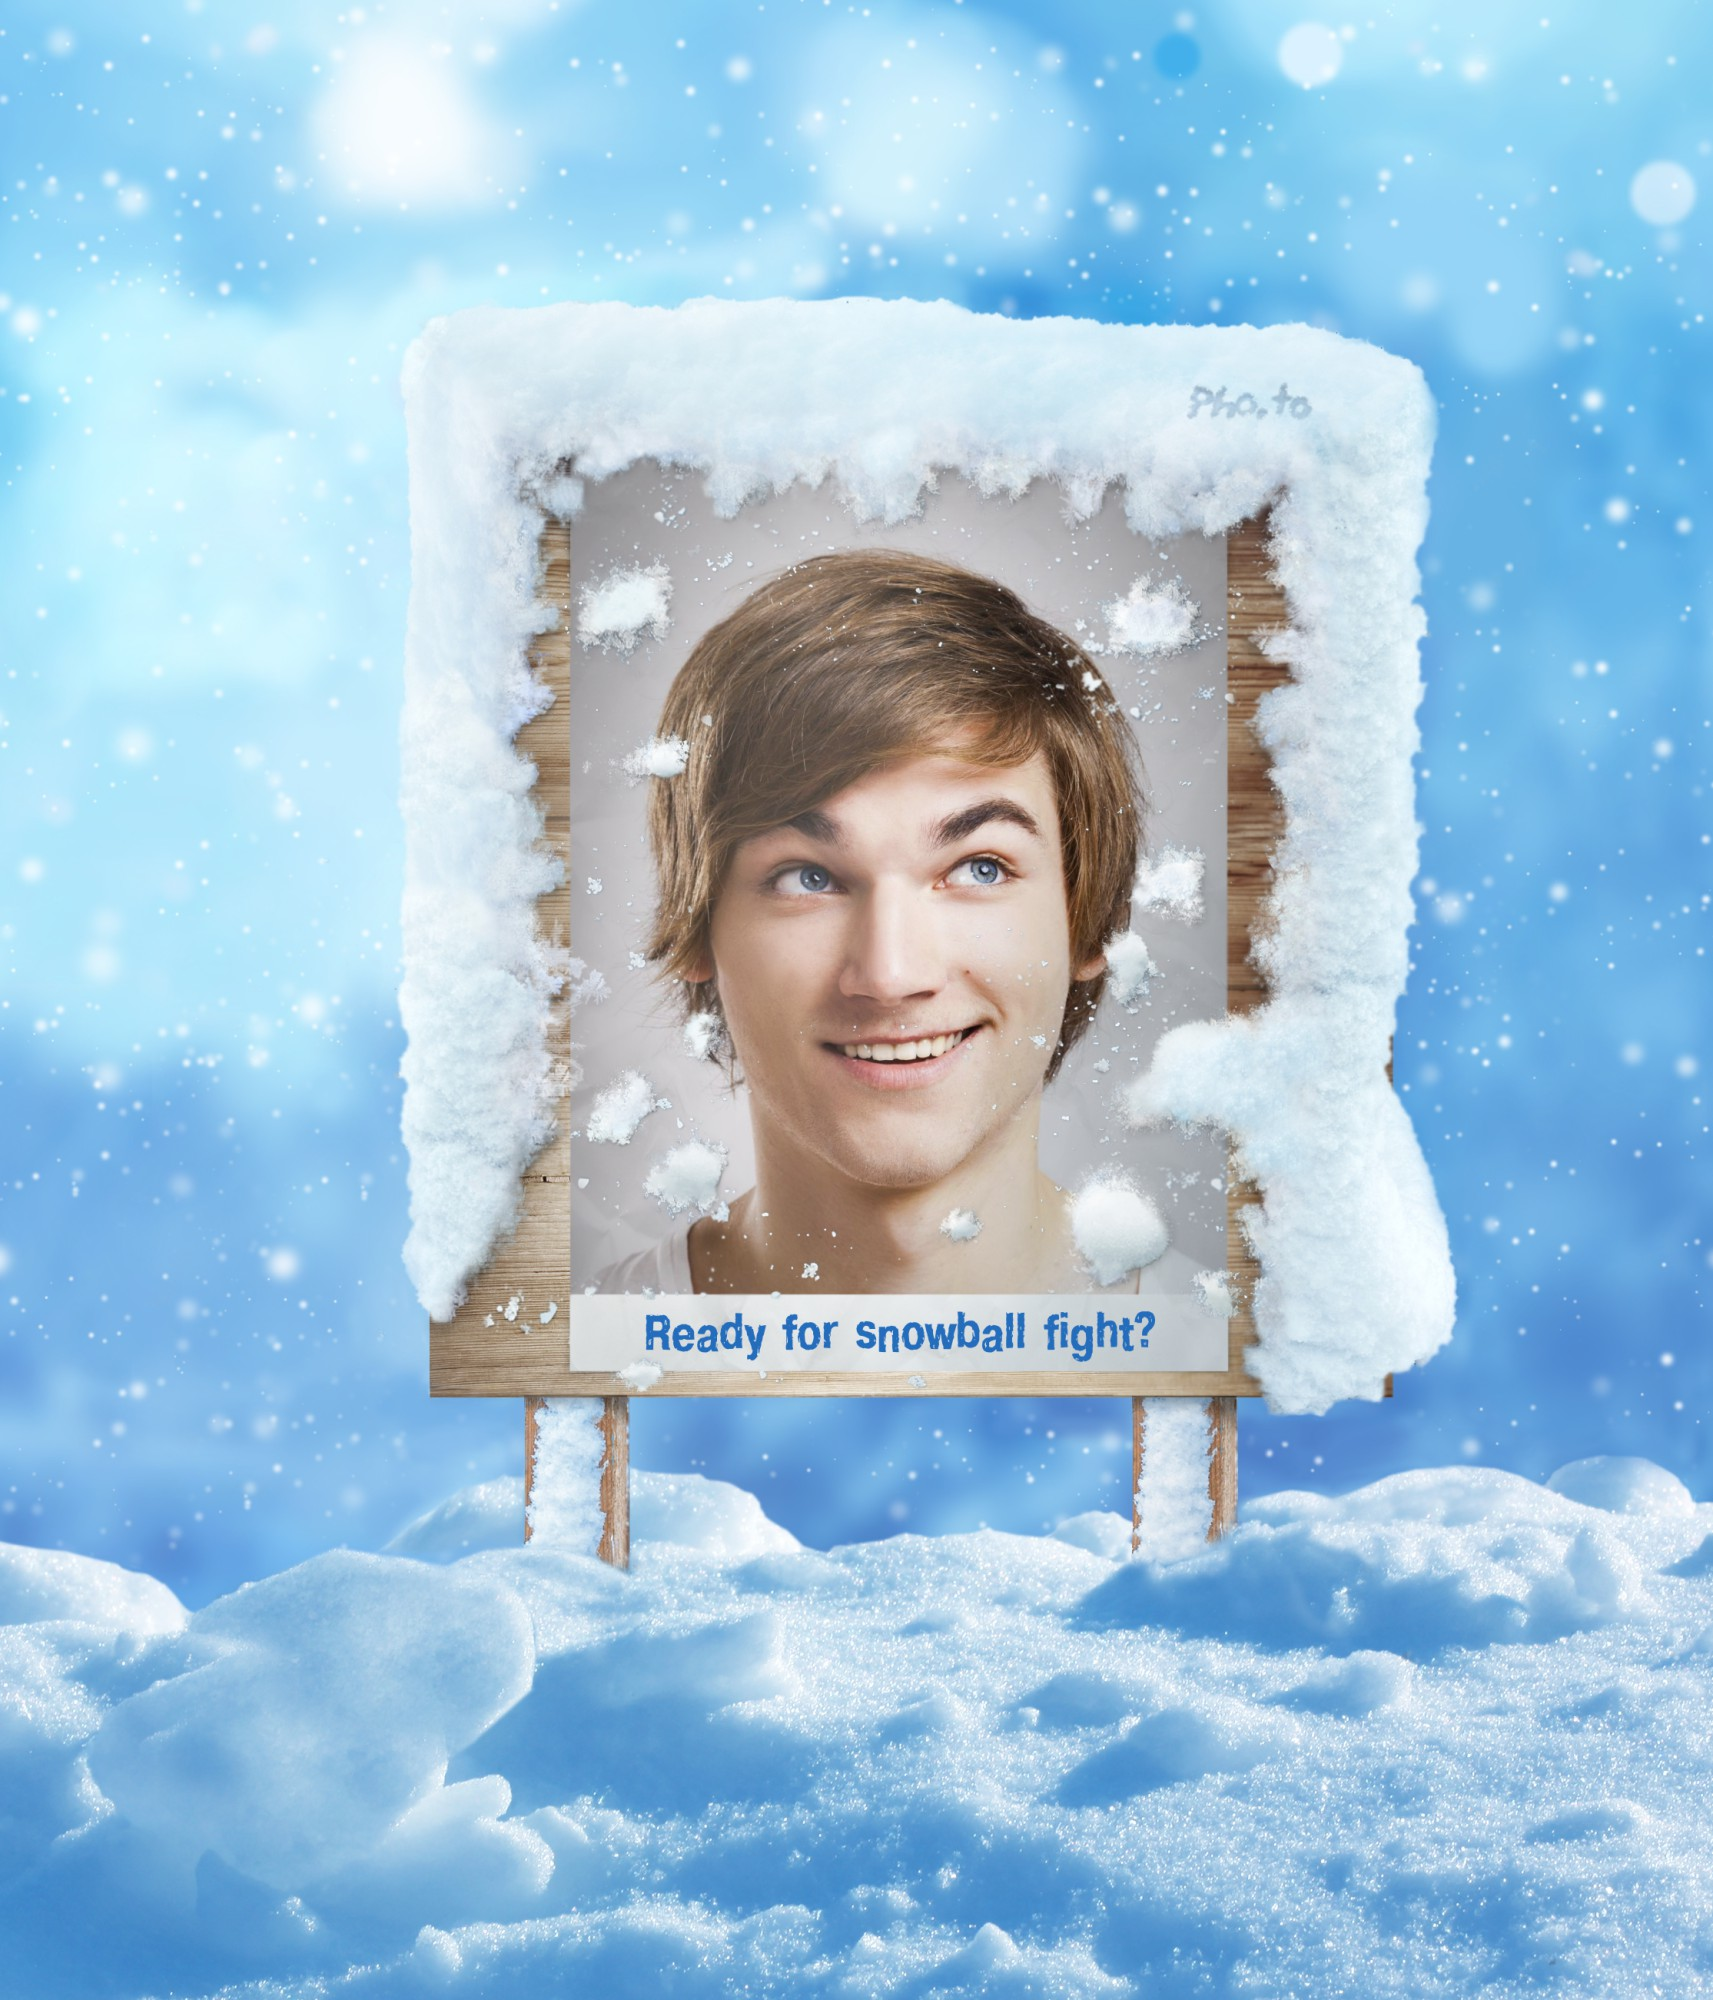 Winter scene with man's photo on the signboard in the middle of snowfight